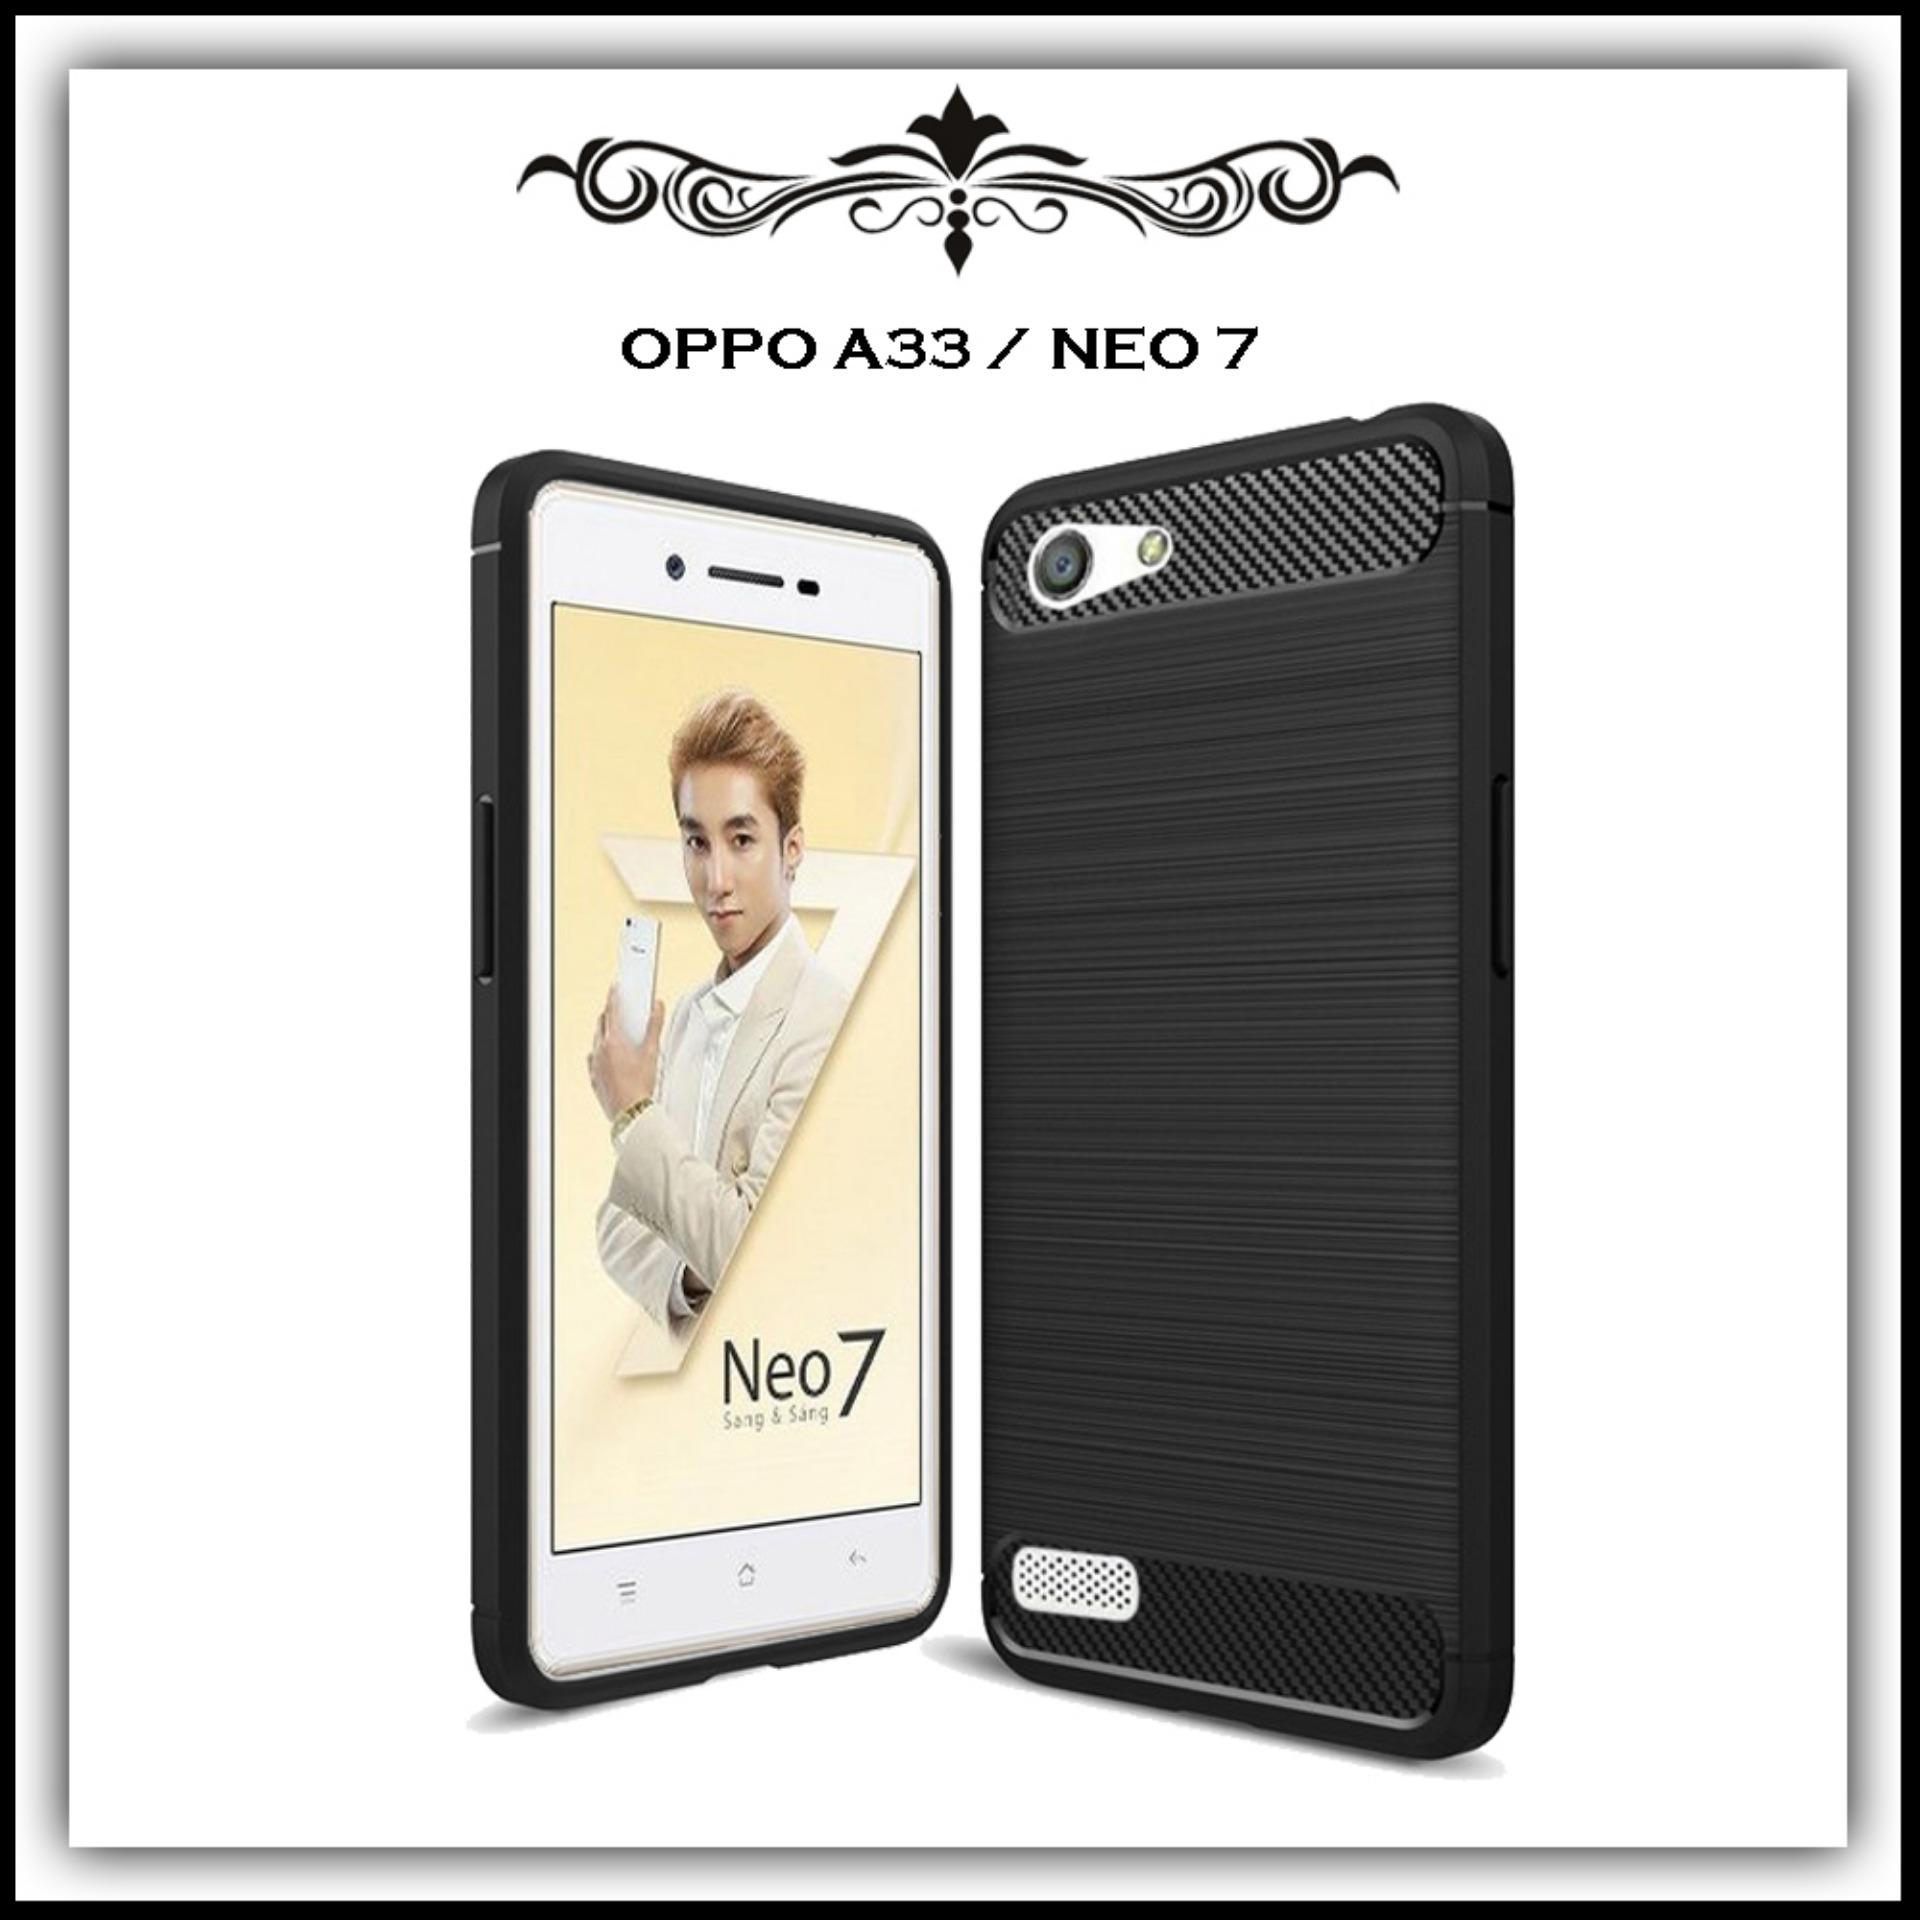 Mushroom Case Ipaky Carbon Fiber Shockproof Hybrid Elegant Case for Oppo A33 / Neo 7